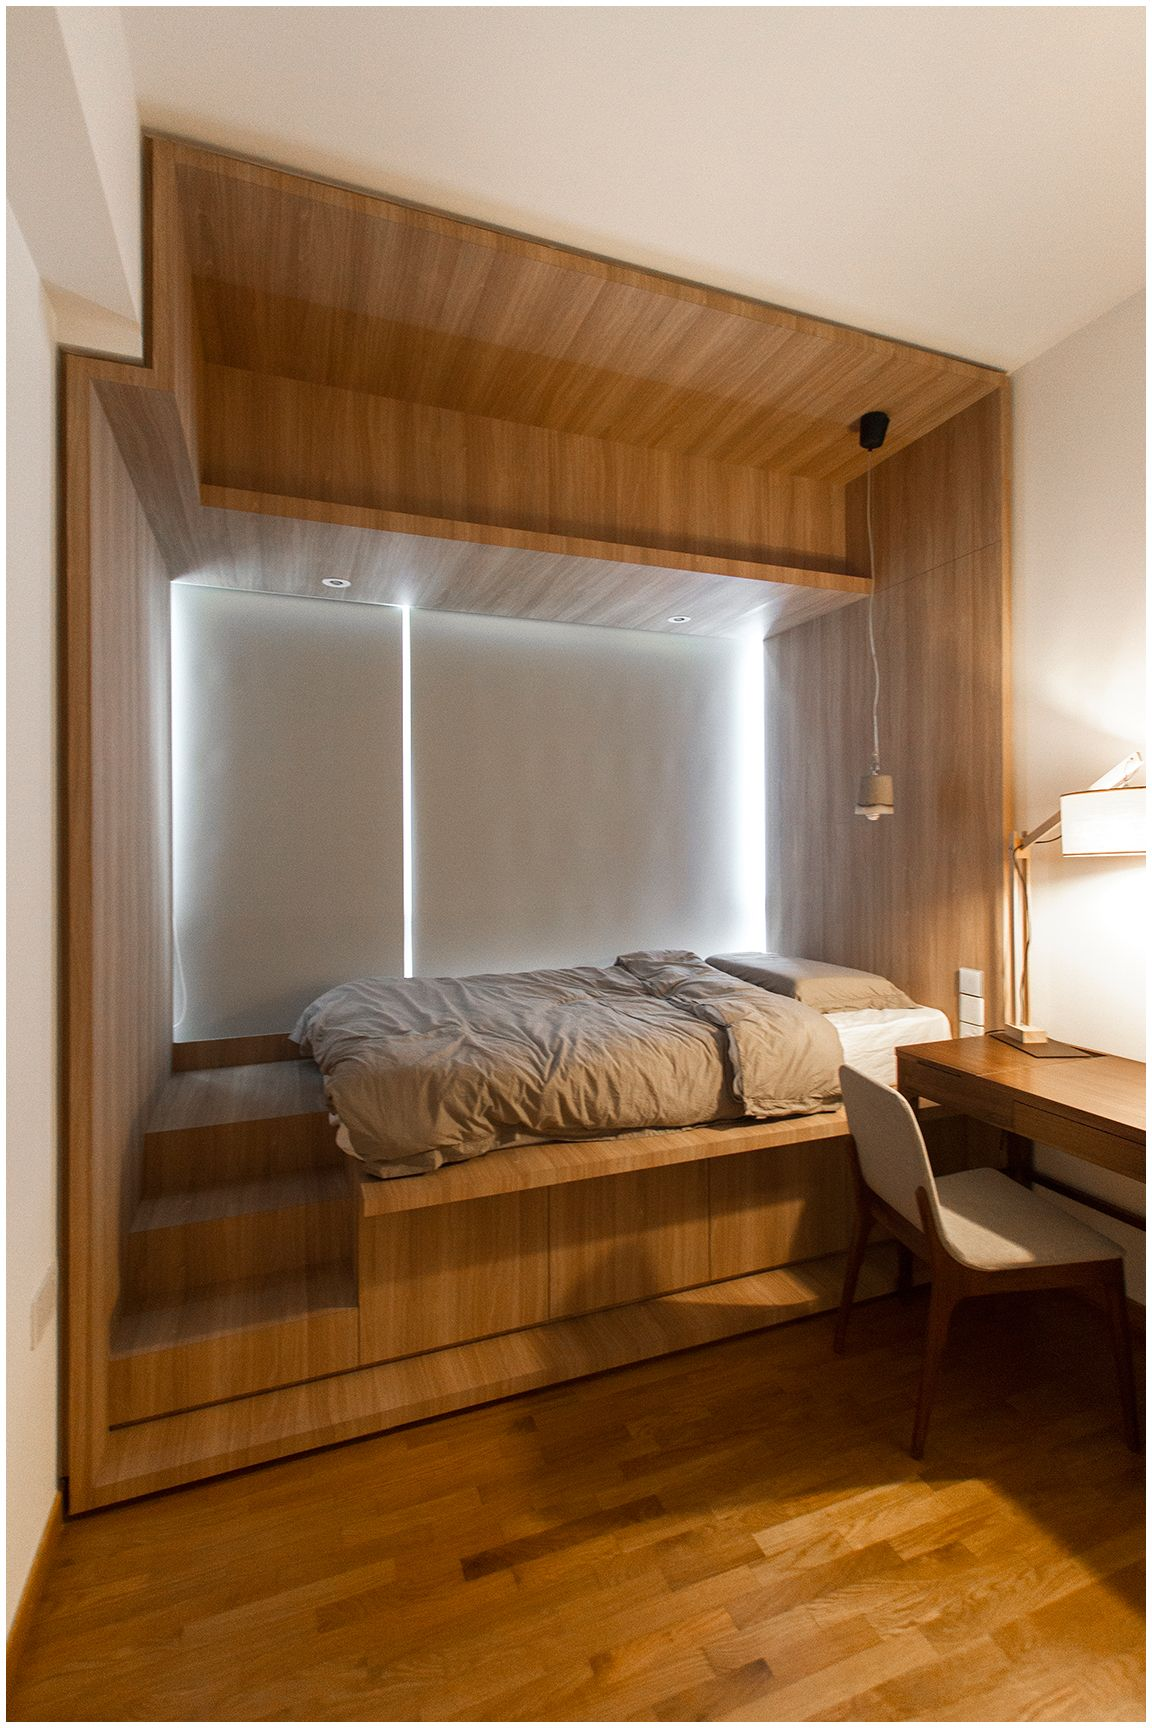 Home zimmer design-ideen pin by high gloss on cama in   pinterest  bedroom bed and room